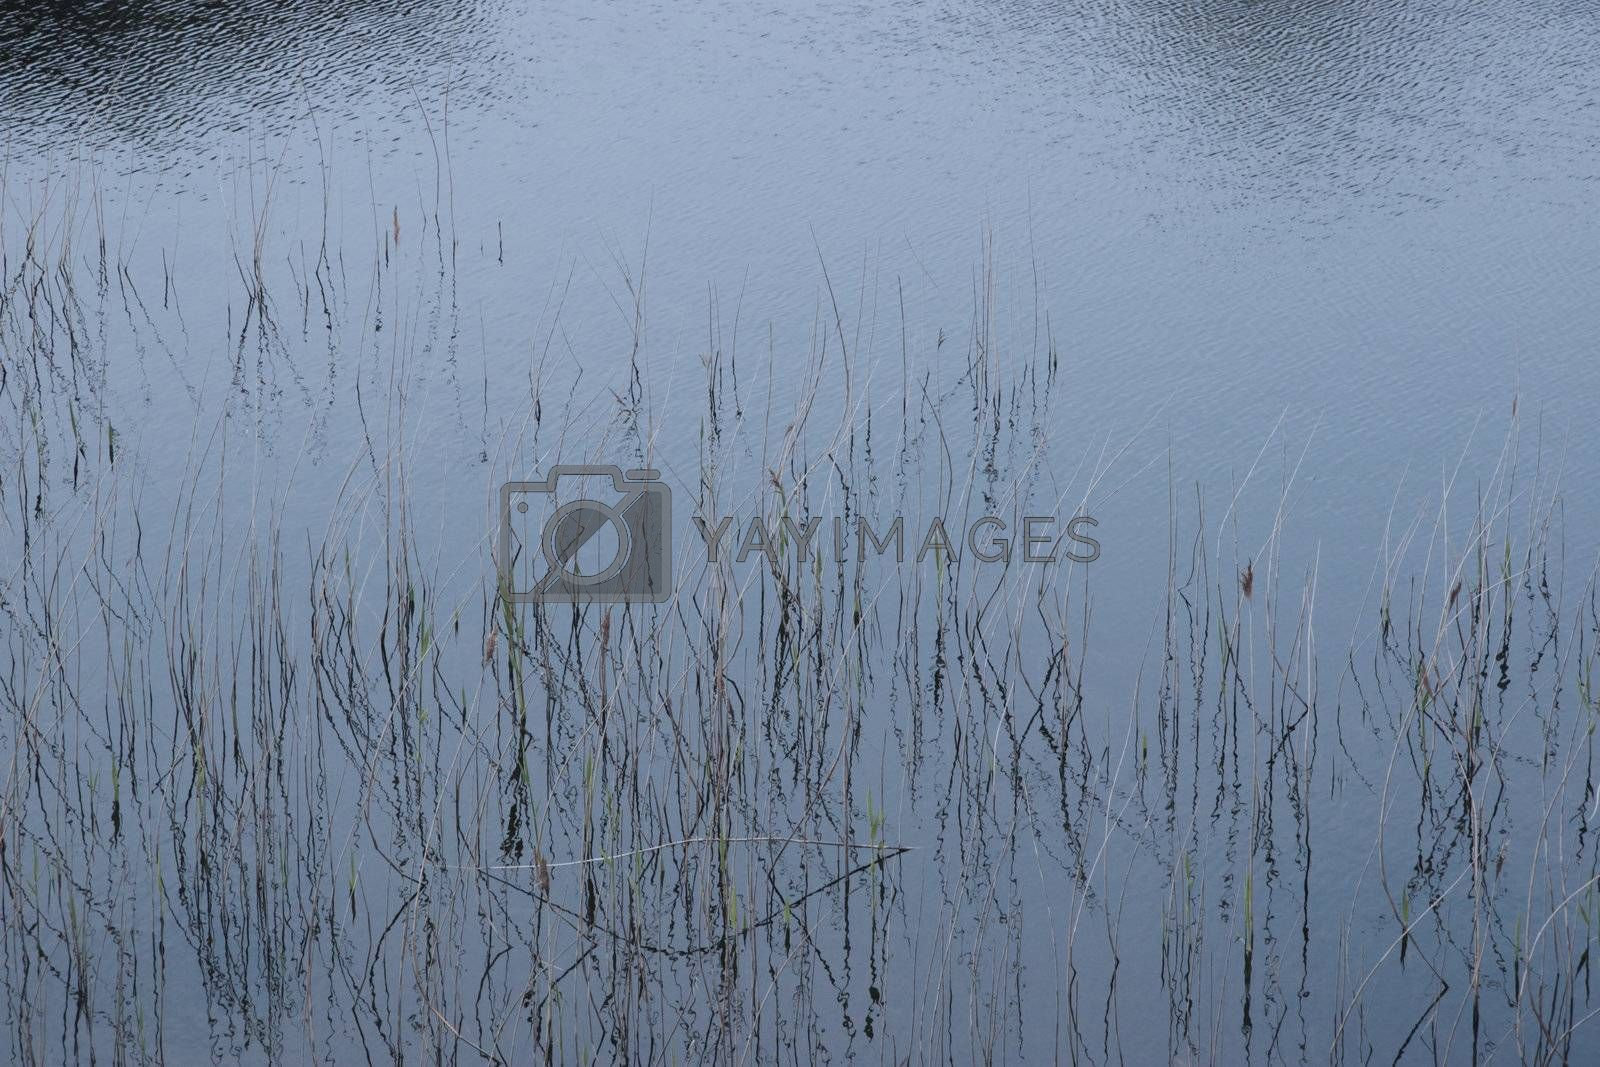 reflections of rushes on a lake